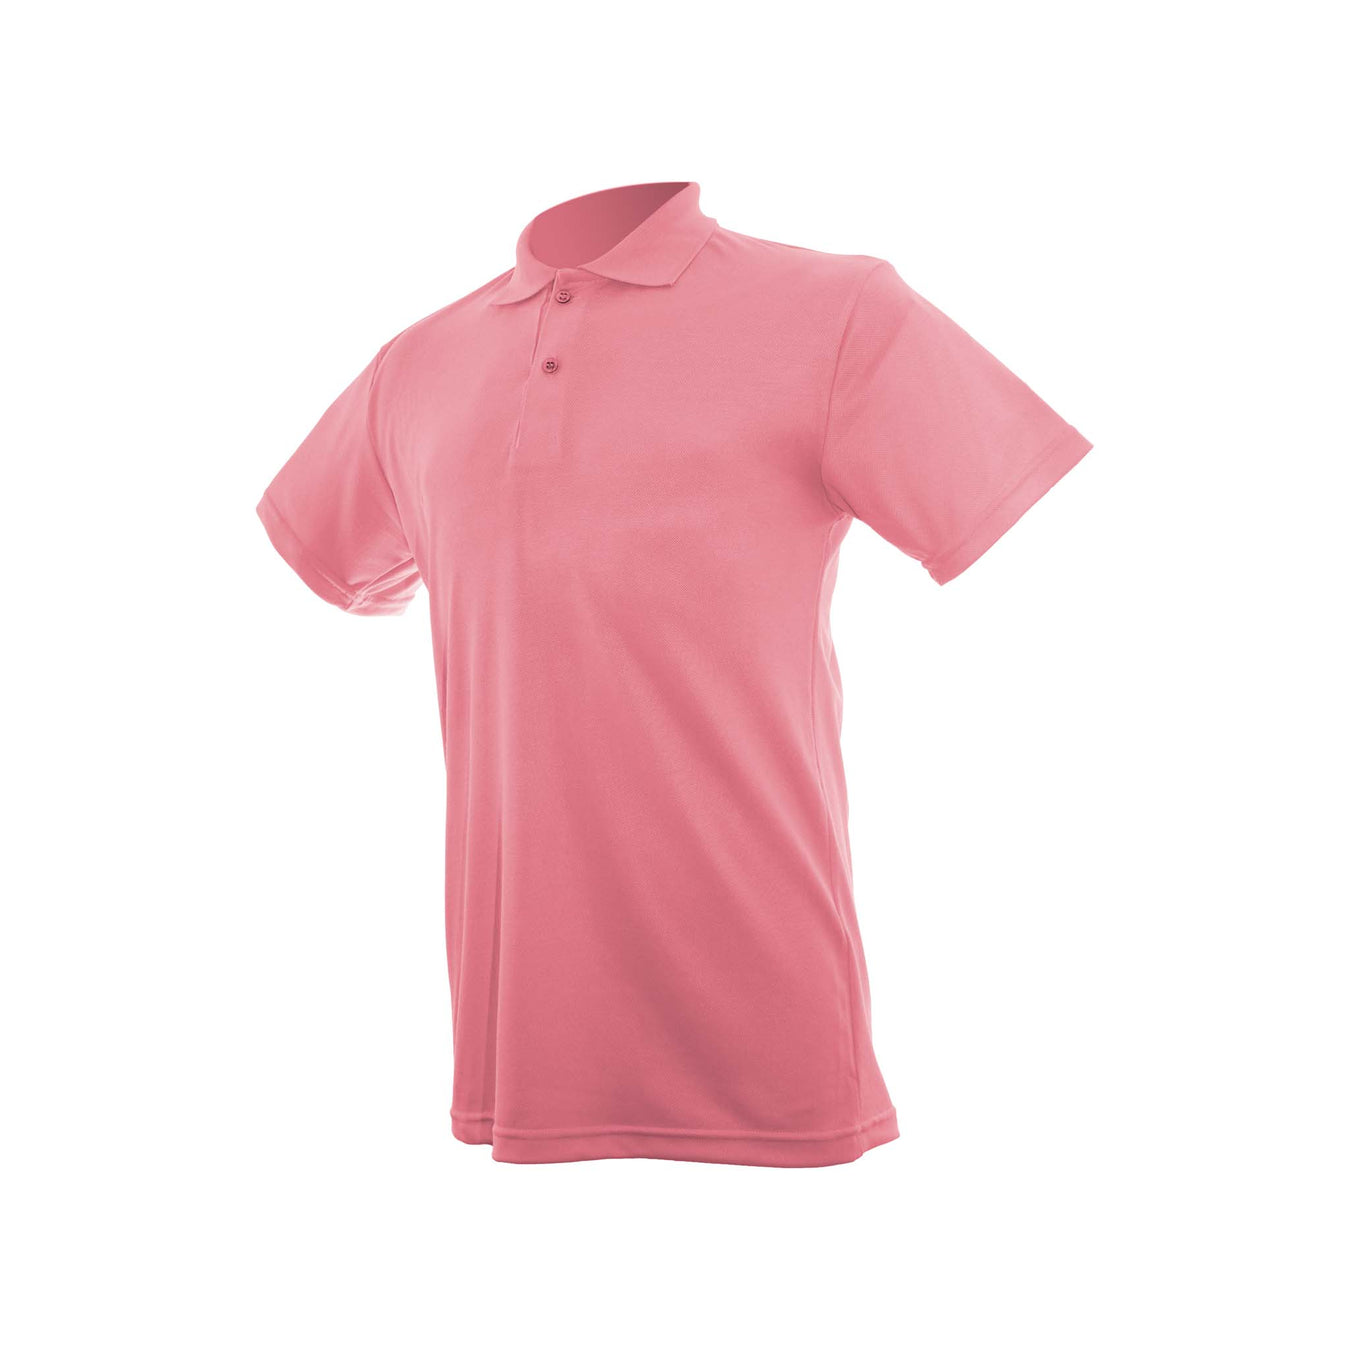 Men's Polos & Dress Shirts